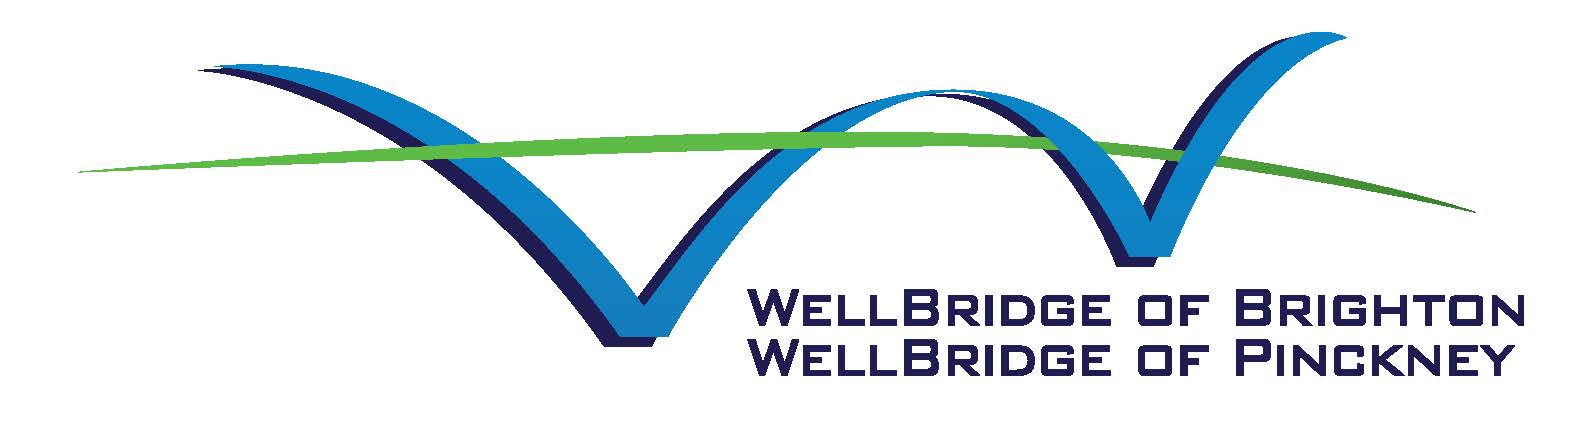 WellBridge_Brighton_PinckneyUSE-FOR-ANNUAL-BUSINESS-SPONSORSHIP-6.14.16.jpg